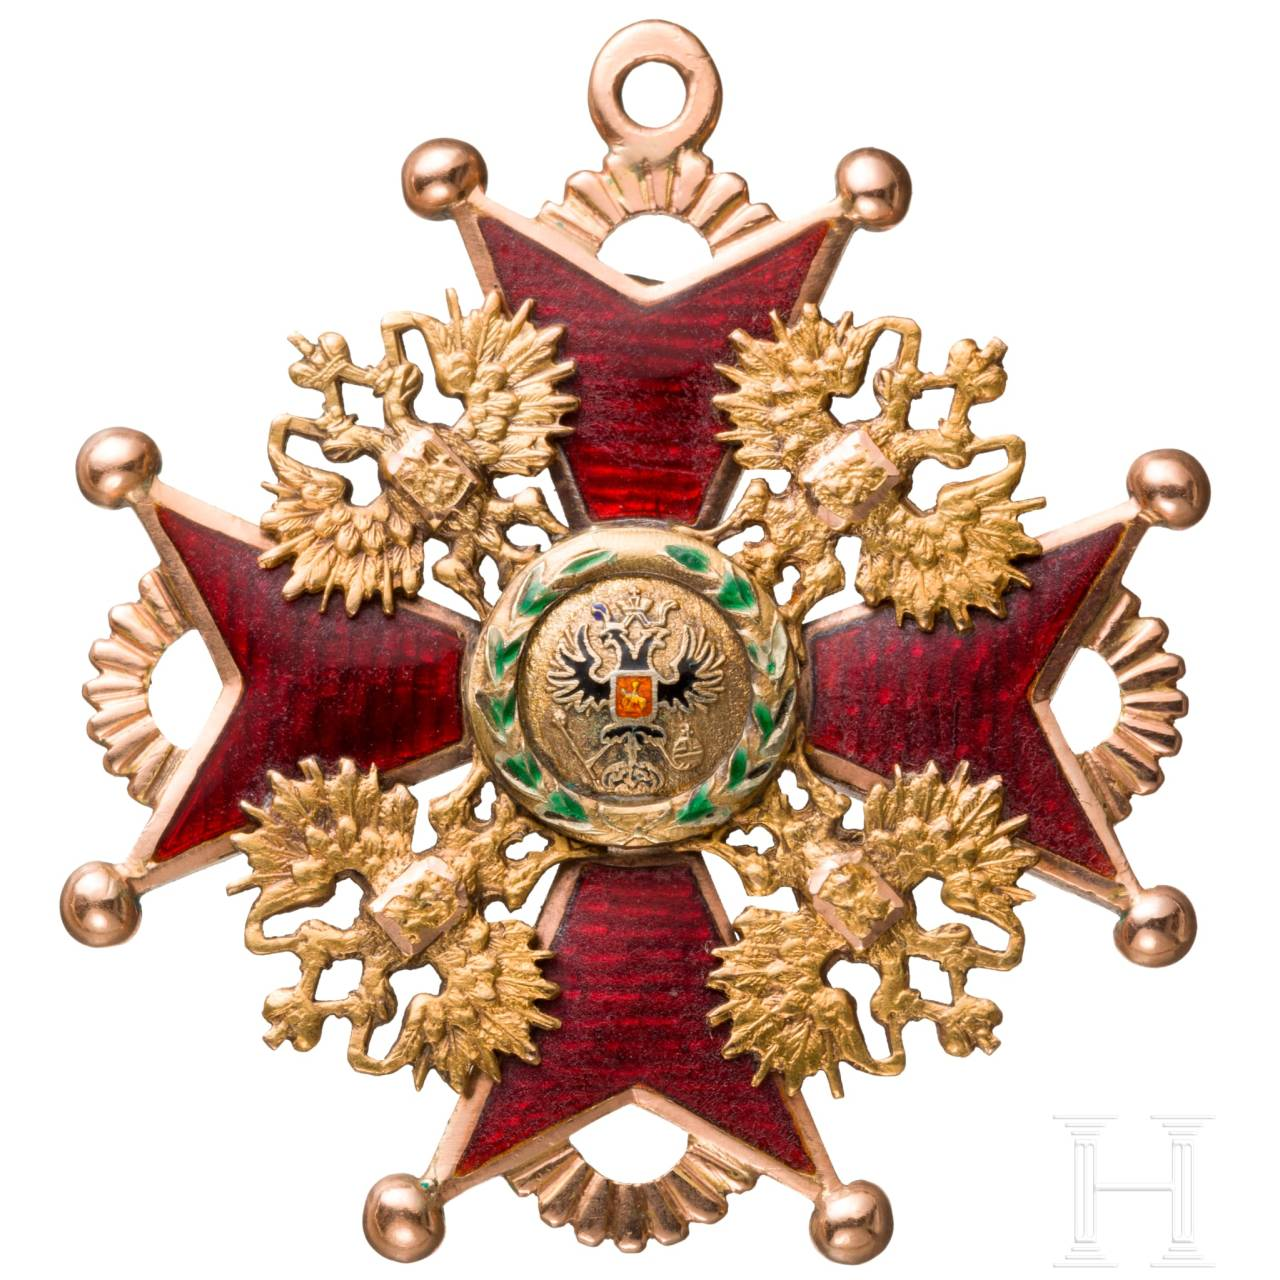 An Order of St. Stanislaus in Gold, 2nd class badge for non-Christians, Russia, circa 1860/70